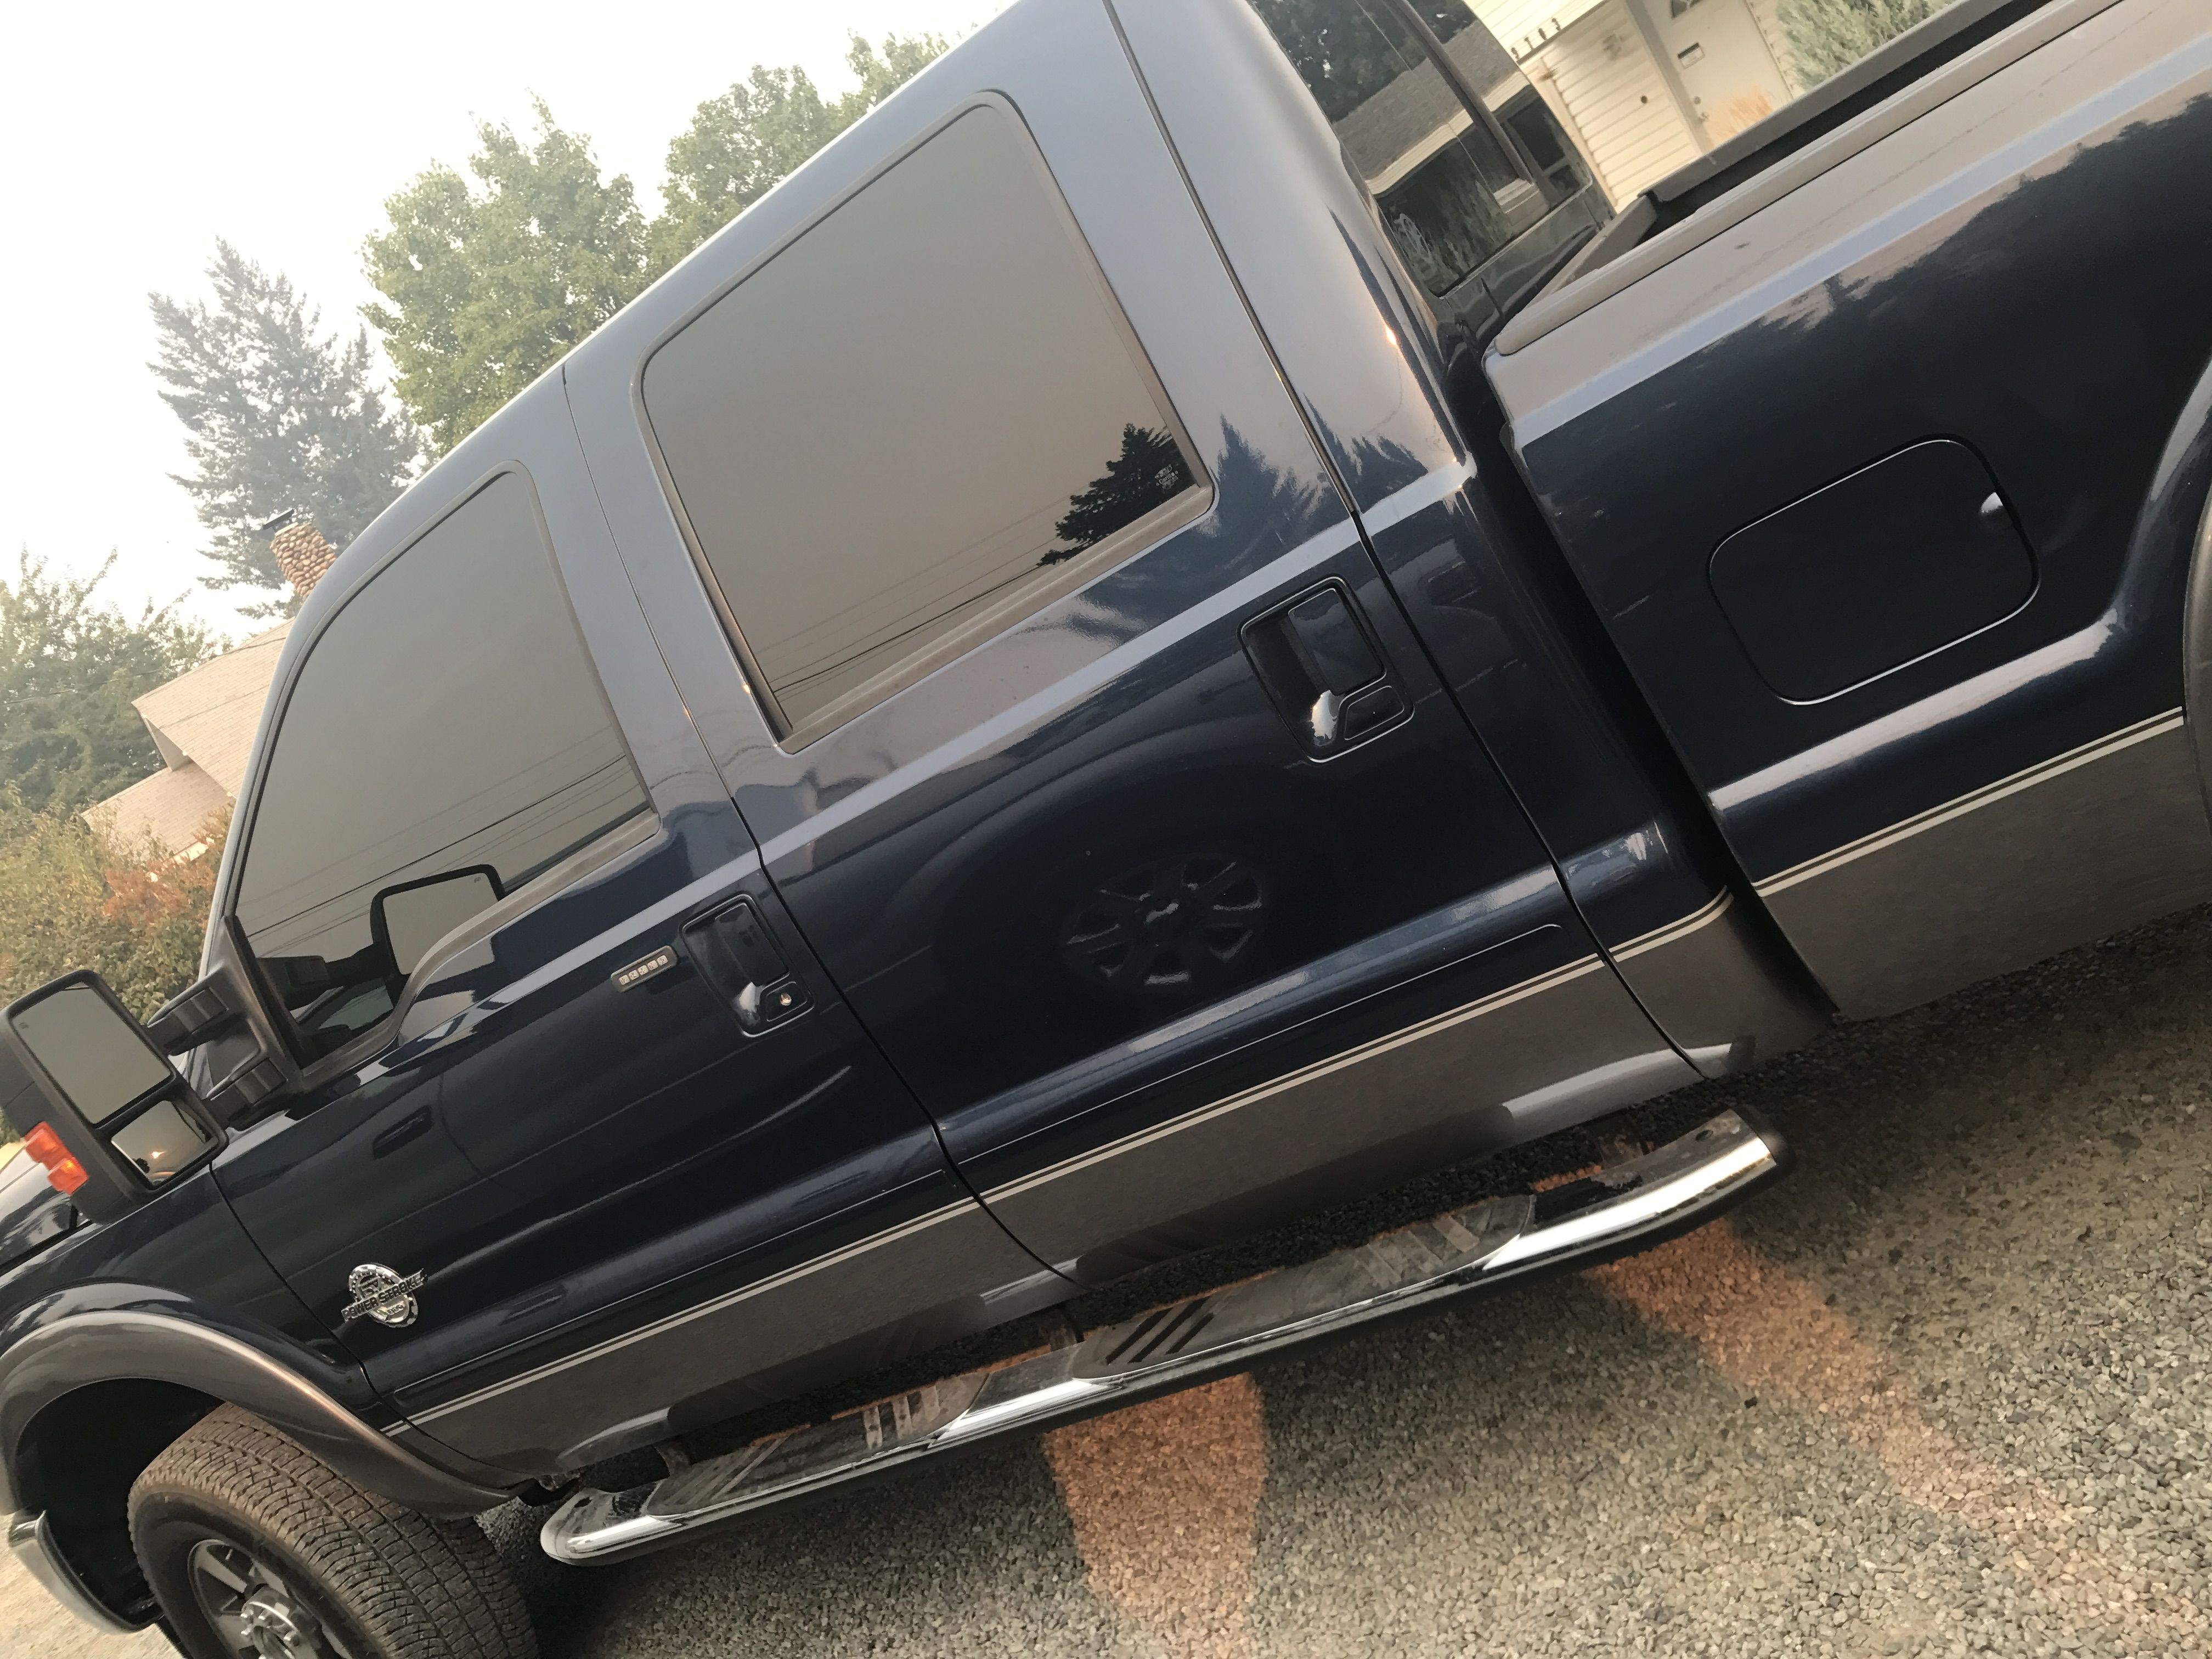 This truck is legit all set! Check it out! It's all tinted